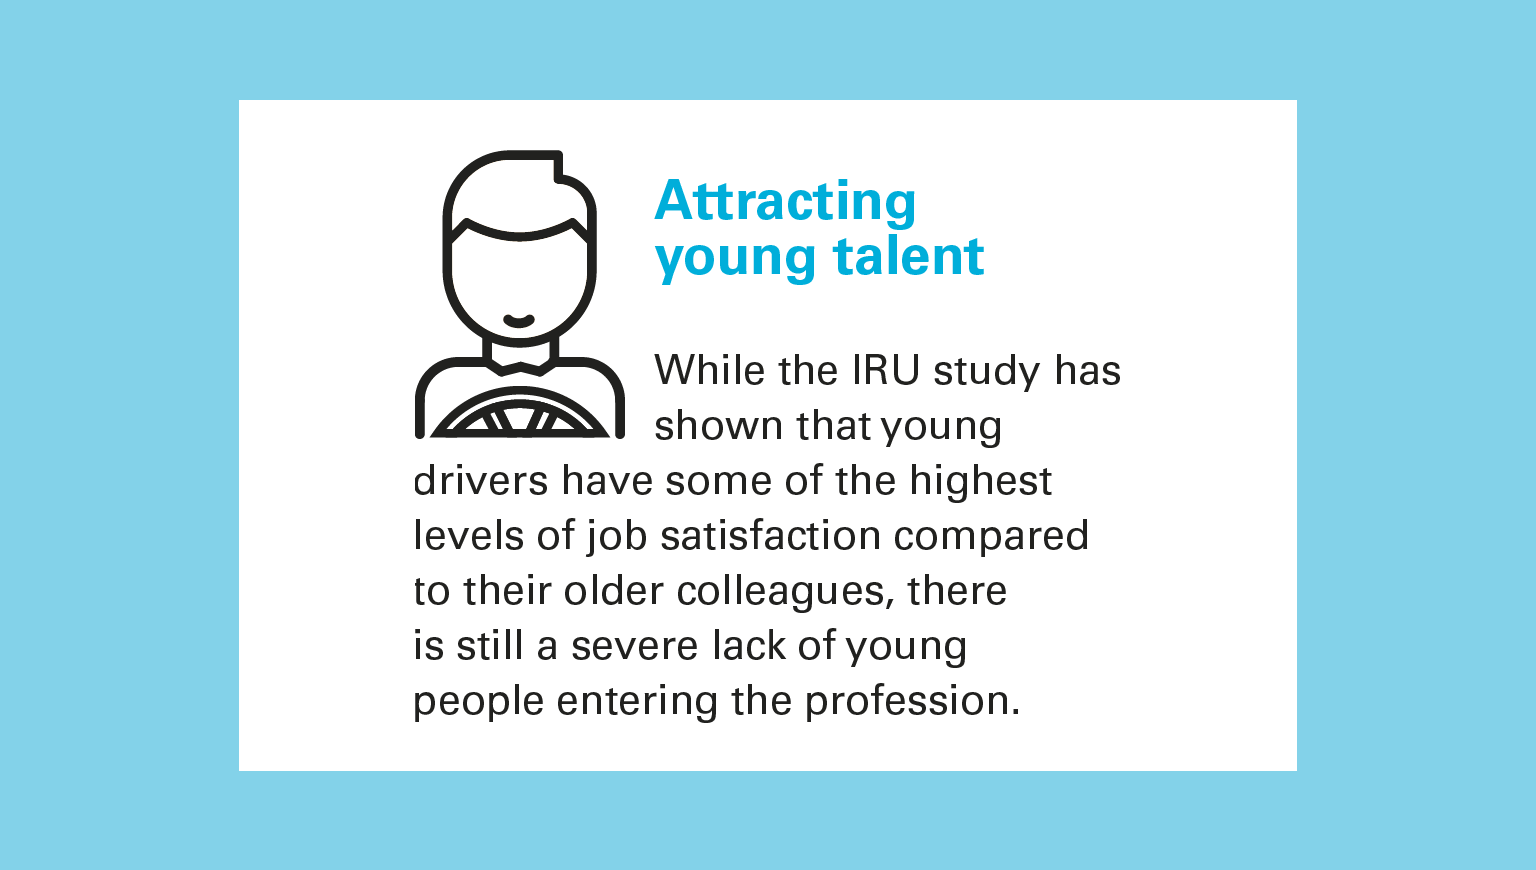 Attracting young talents